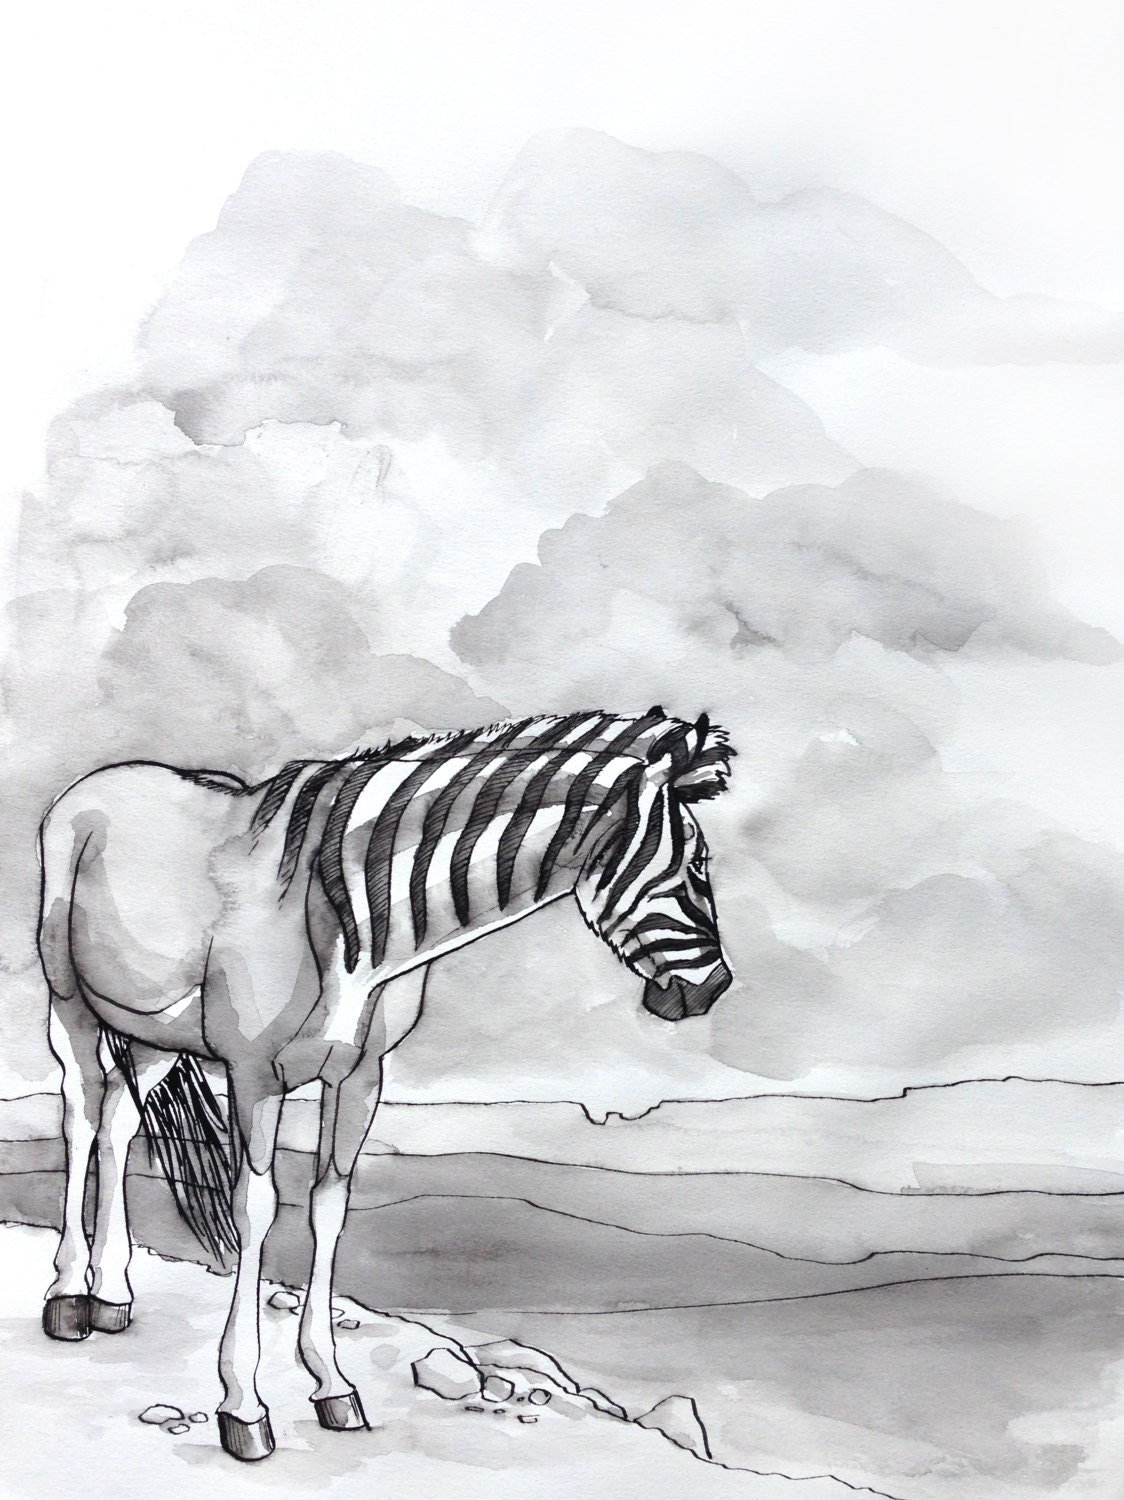 Quagga Extinct Animals Original Ink Drawing Inktober Prehistoric Wildlife  Horse Artwork Original Artwork Unframed Artwork Black